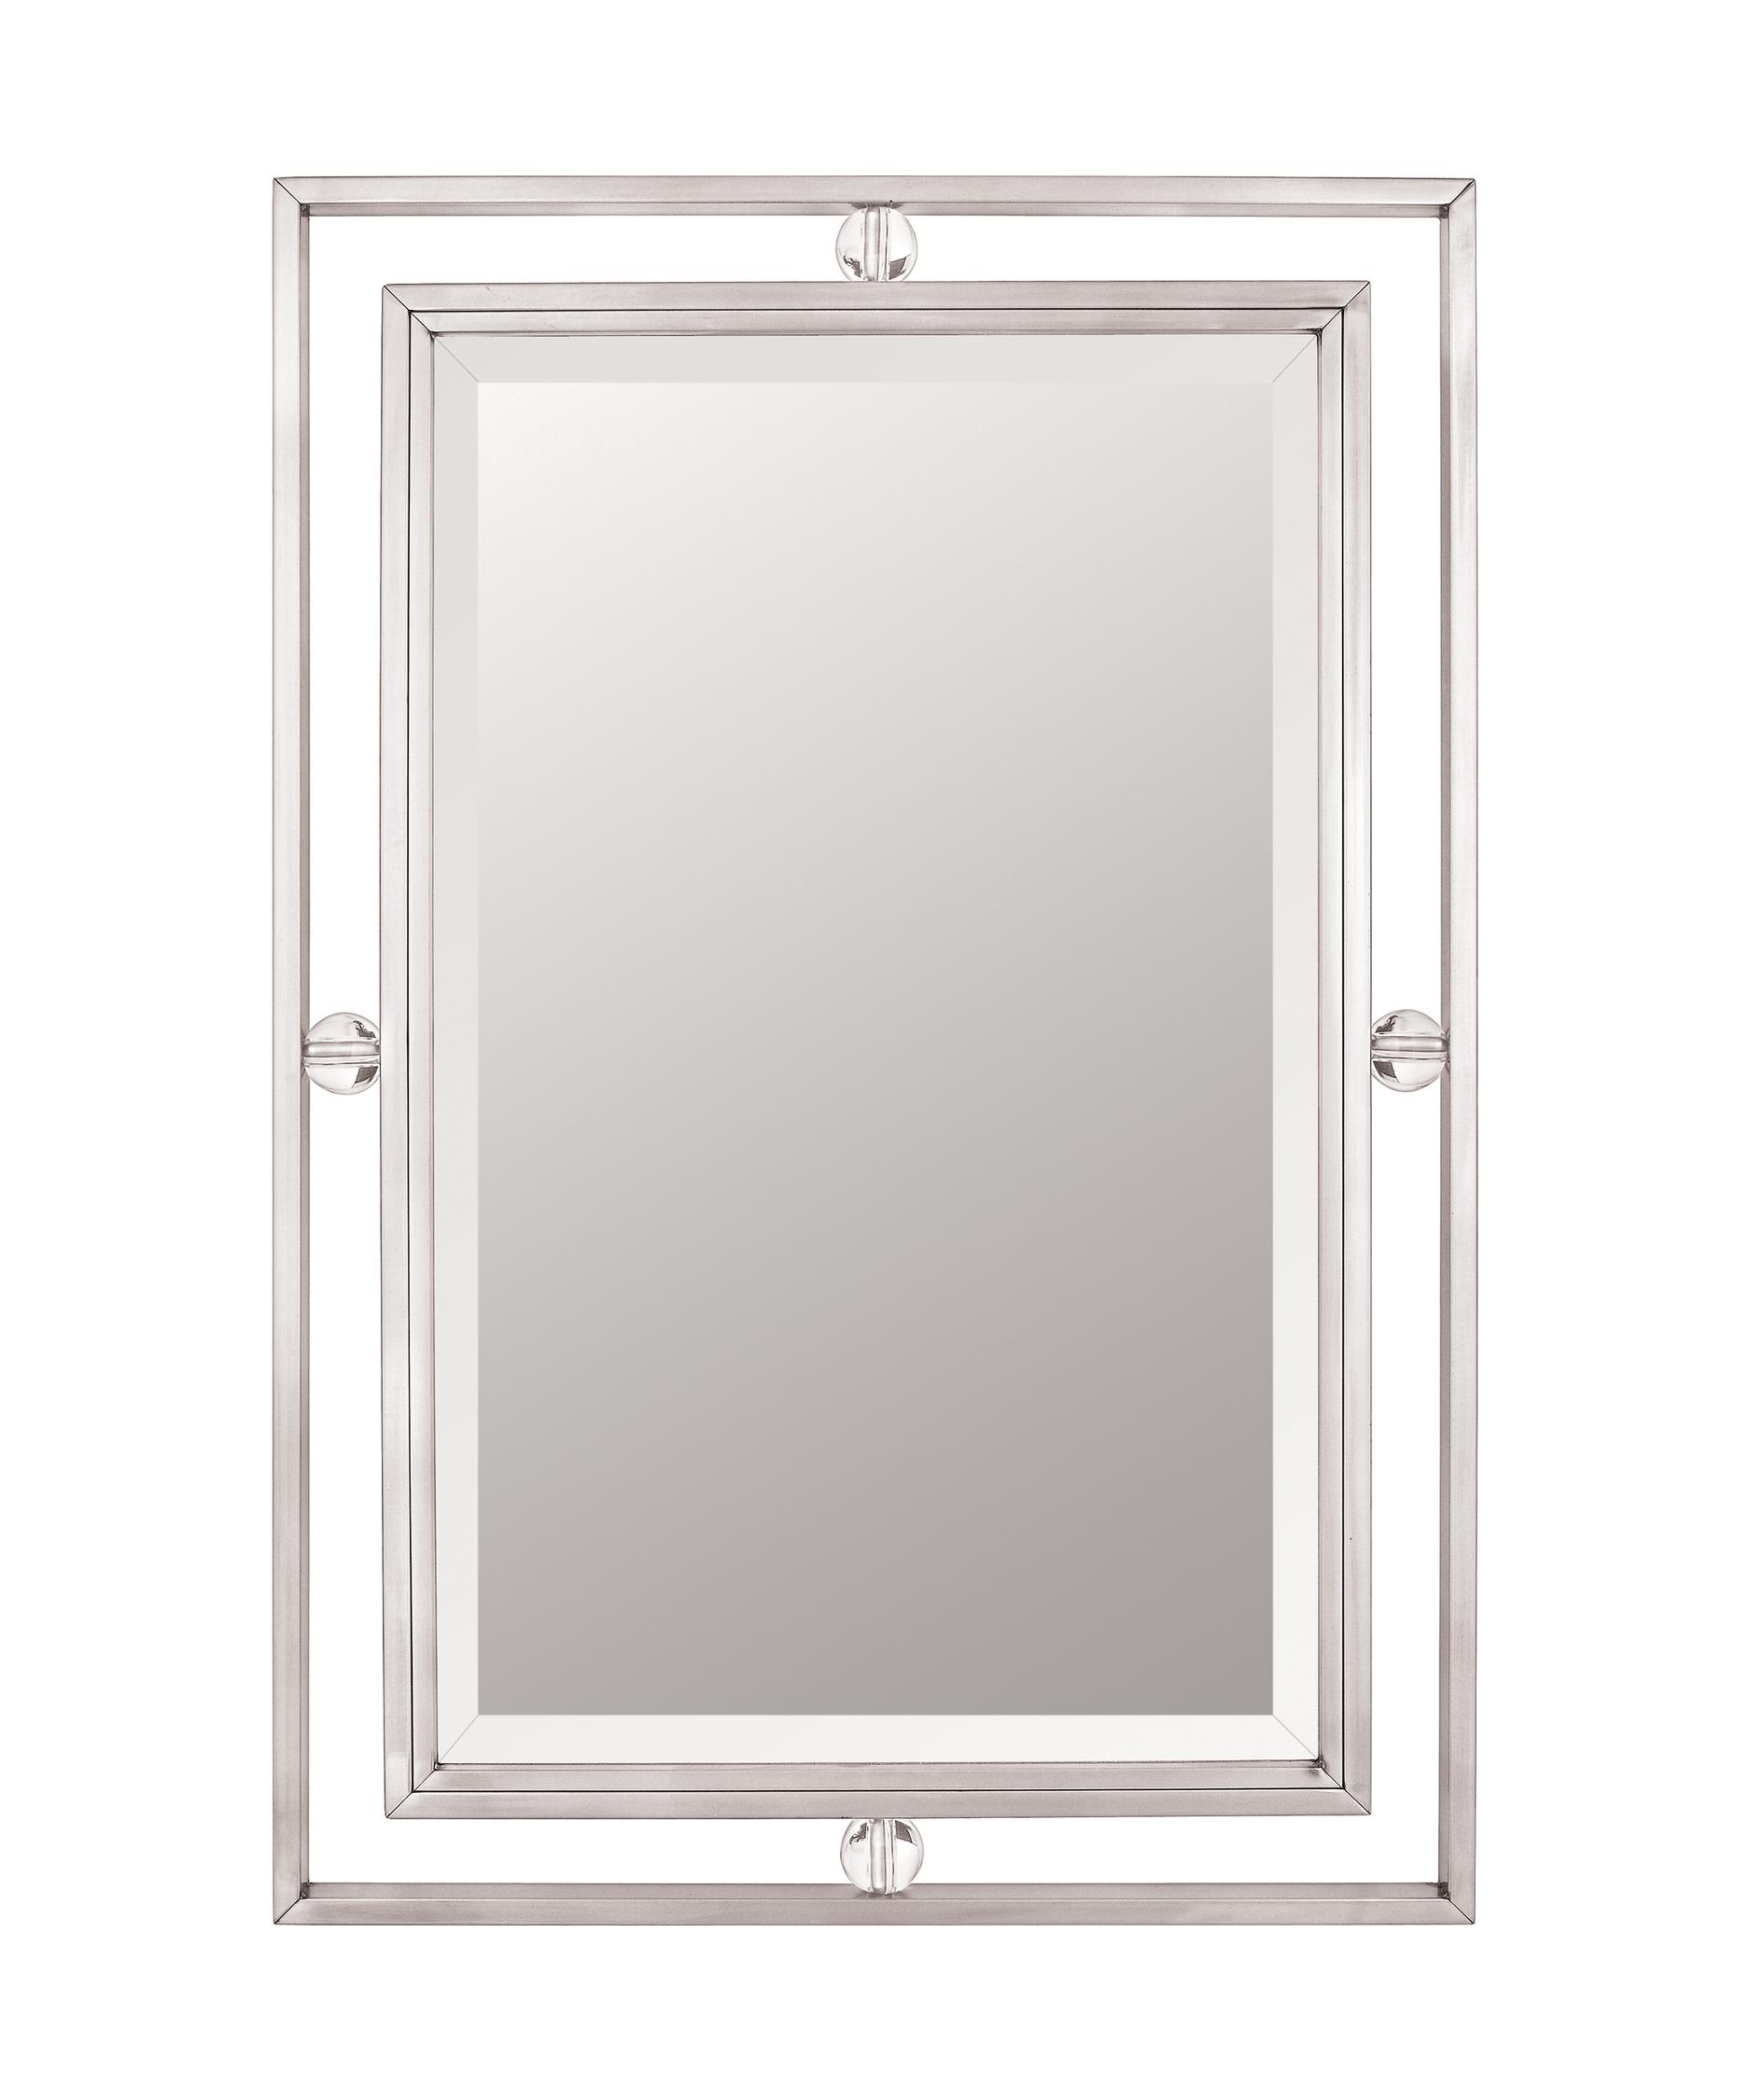 Quoizel Bathroom Mirrors quoizel dw43222 downtown wall mirror | capitol lighting 1